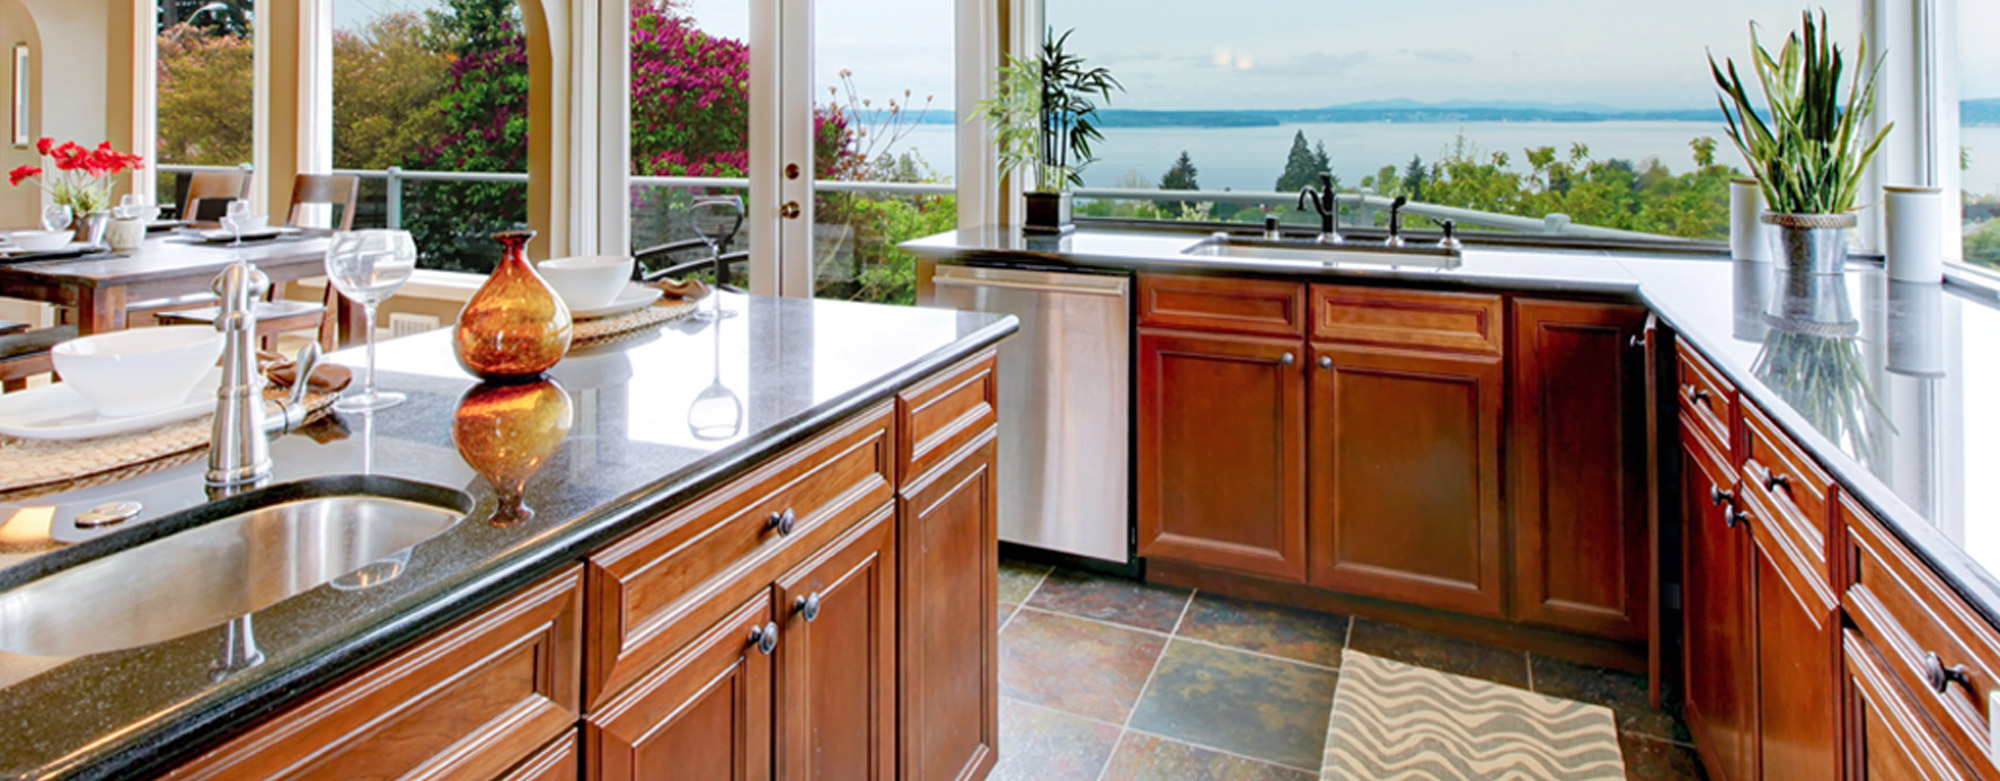 Salt Lake City Countertops Granite Countertops Salt Lake City Utah Starting At 29